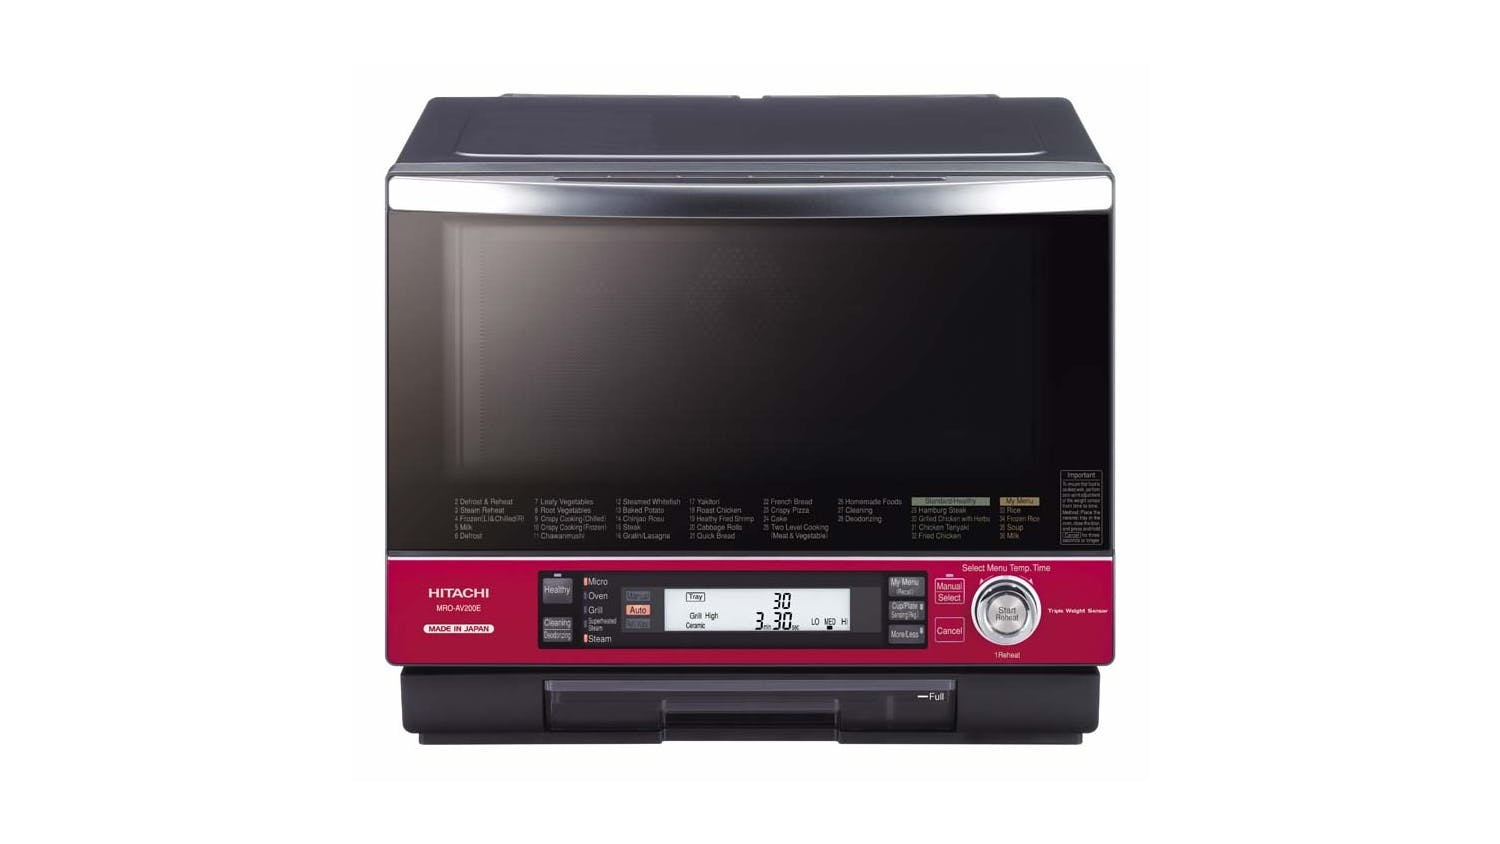 Hitachi 33l Made In An Microwave Oven Pearl Red